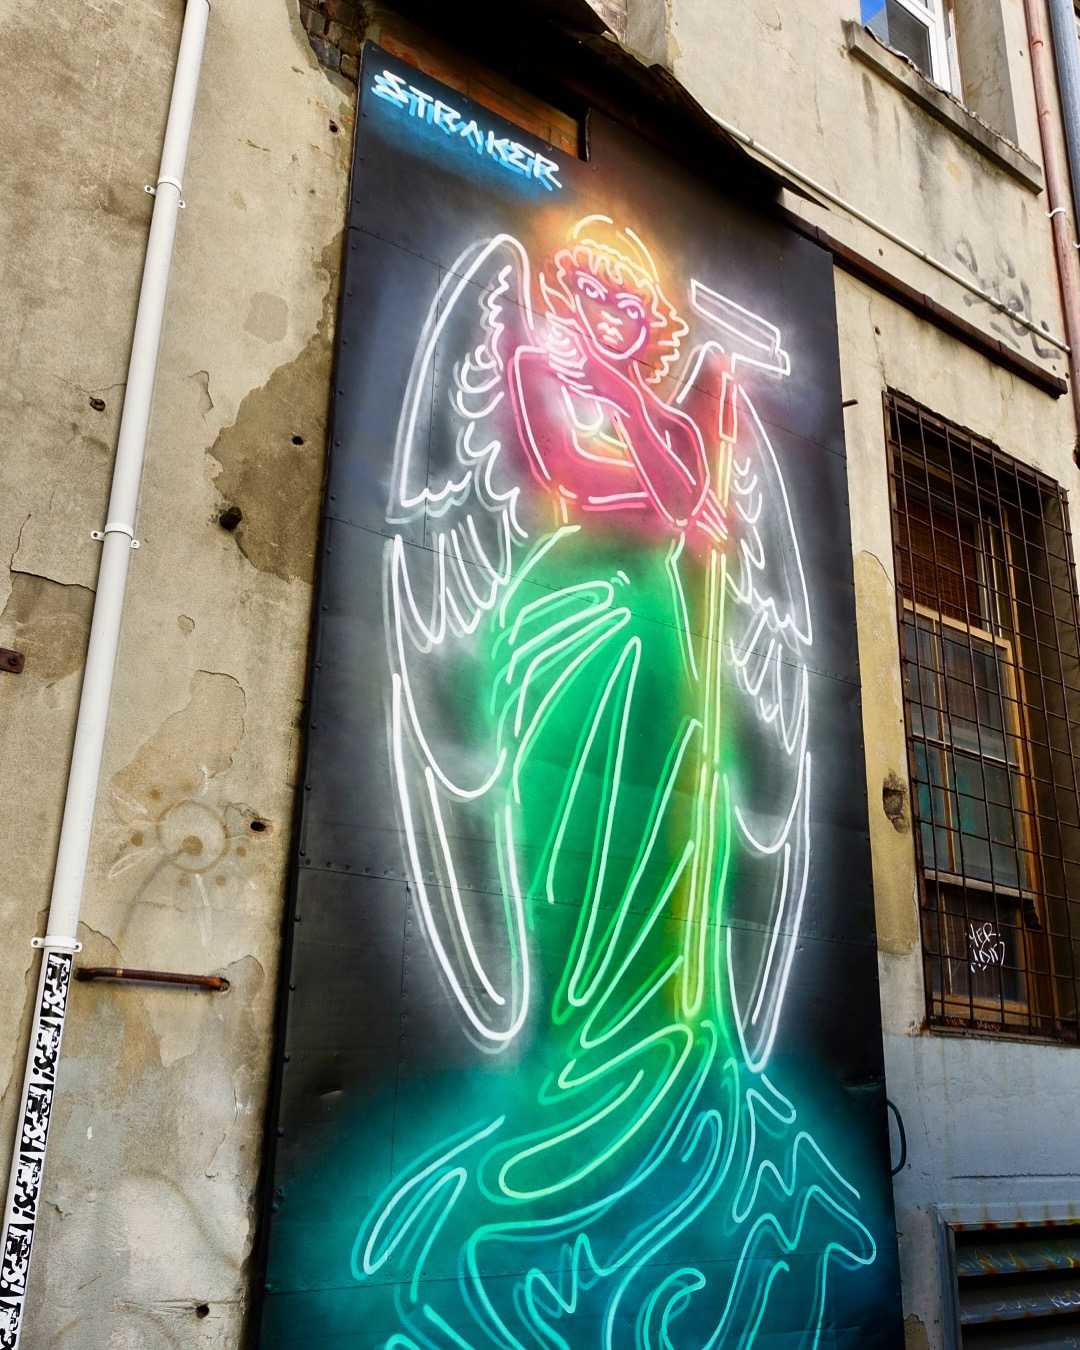 Mural artworks in Pier Street Laneway (2018) - Artist Drew Straker 'the Muralist'Pier Street lanewayOne of 3 new artworks in the Pier Street laneway by Perth artist Drew Straker.Straker's unique murals appear to light up streets like neon signs, but are actually 2D and created using only spray paint and a 'neon glow' technique (of white lines under a transparent colour).For further details on the artist see Muralist's Instagram page